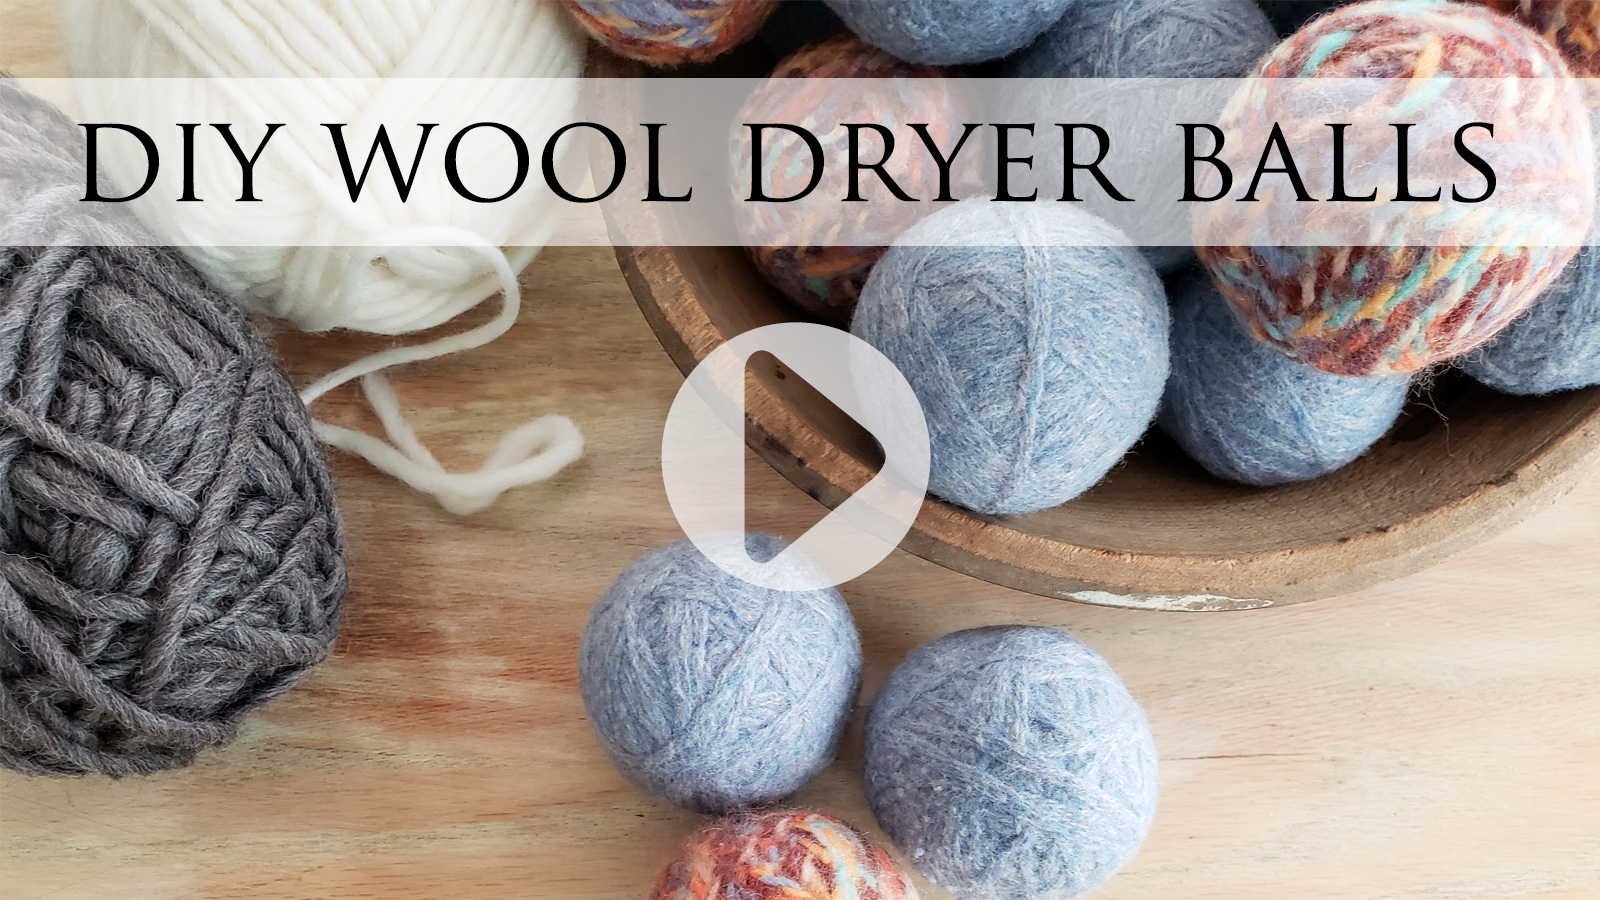 DIY Wool Dryer Balls Video Tutorial from a Felted Sweater by Larissa of Prodigal Pieces | prodigalpieces.com #prodigalpieces